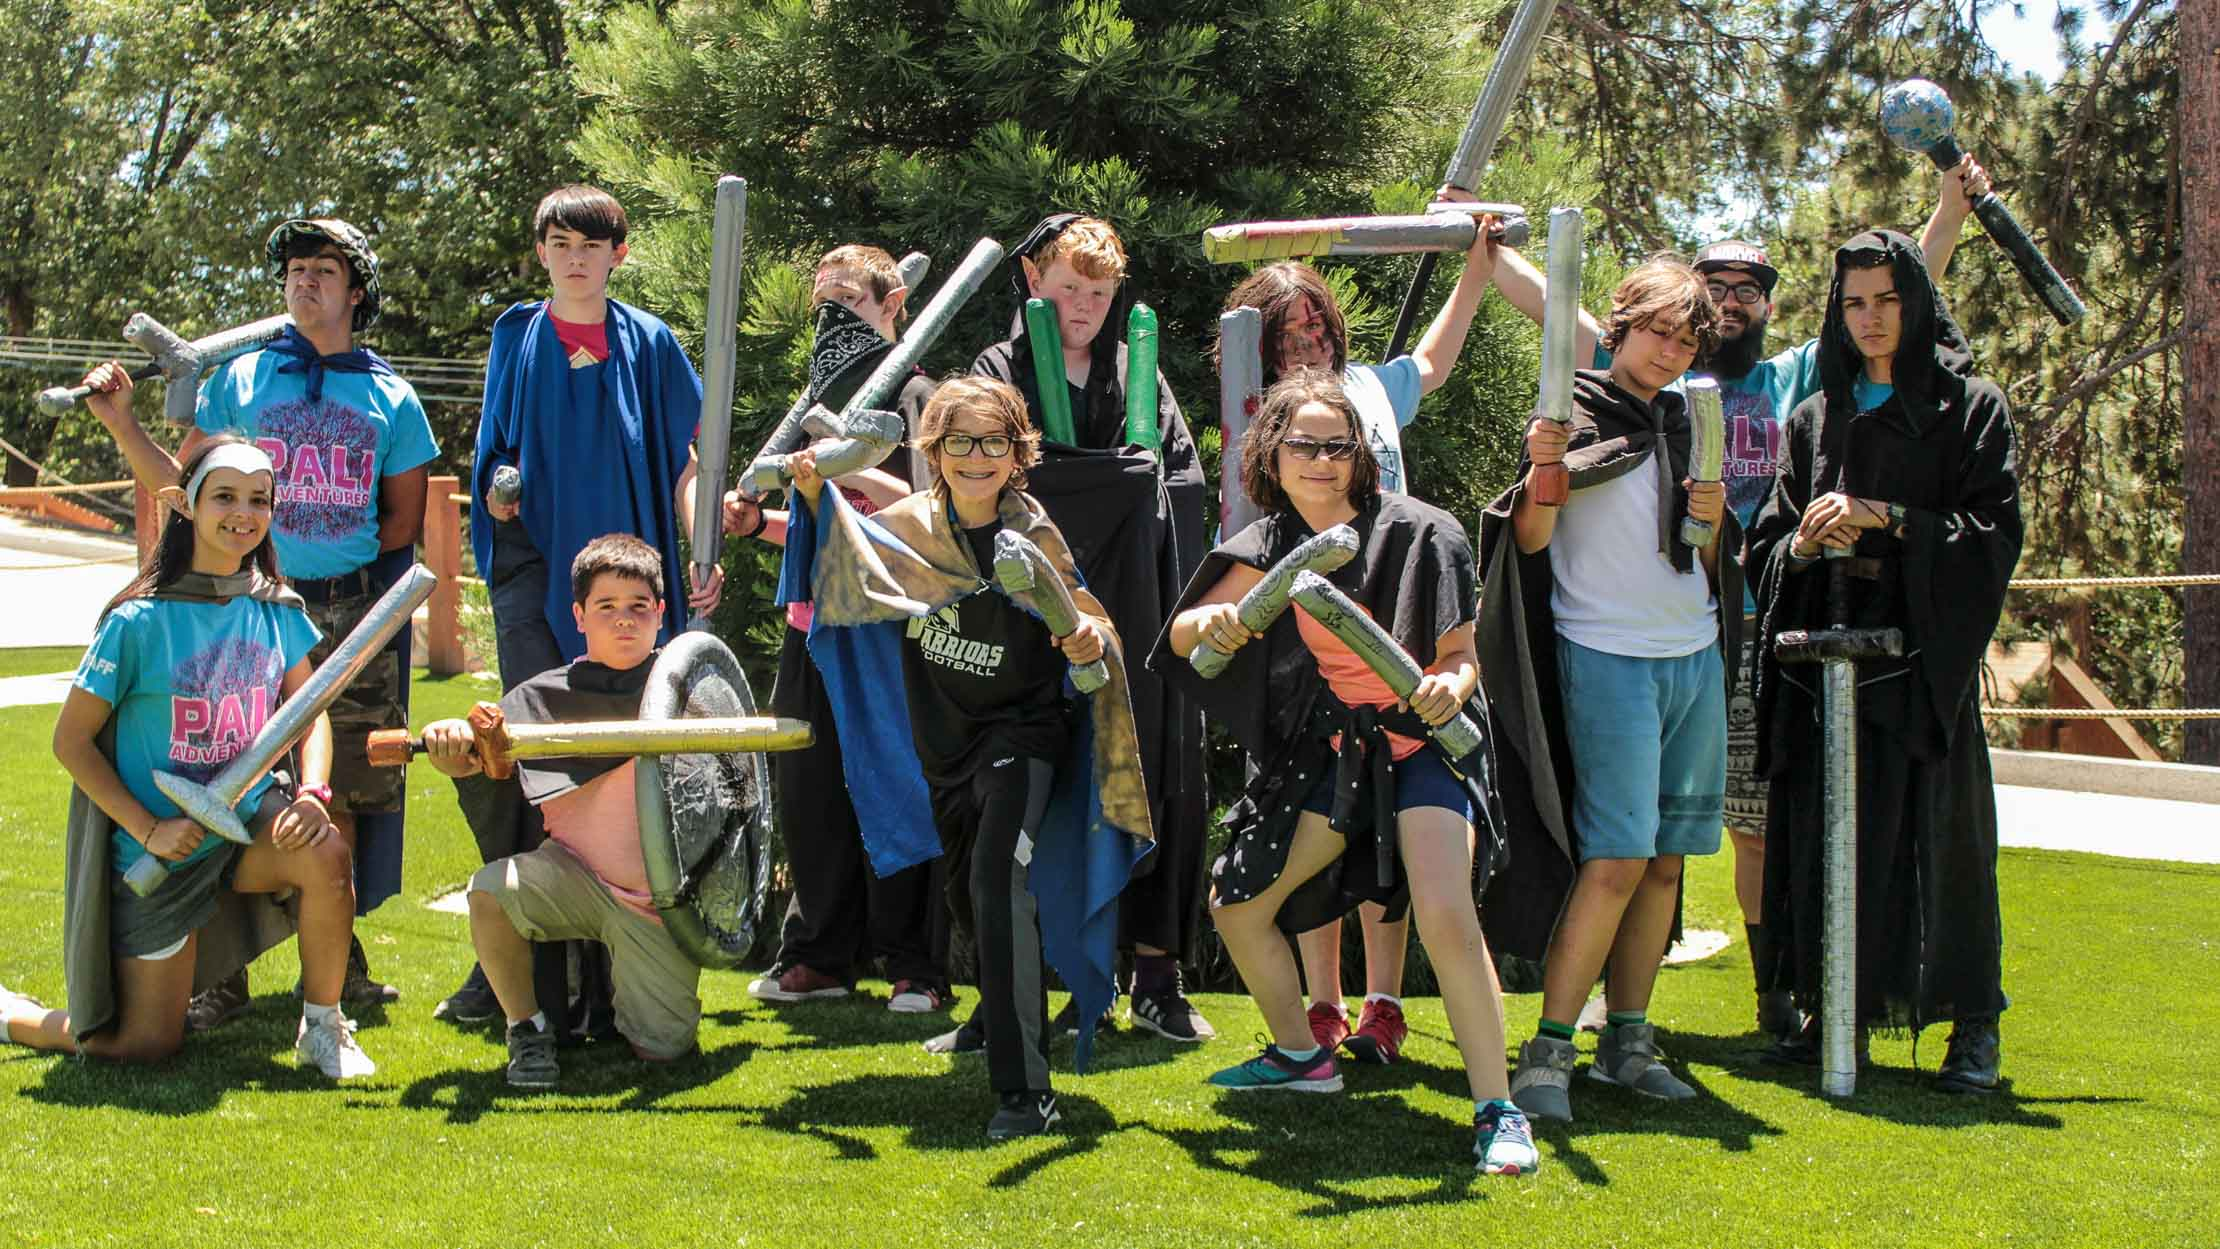 Group of campers LARPing